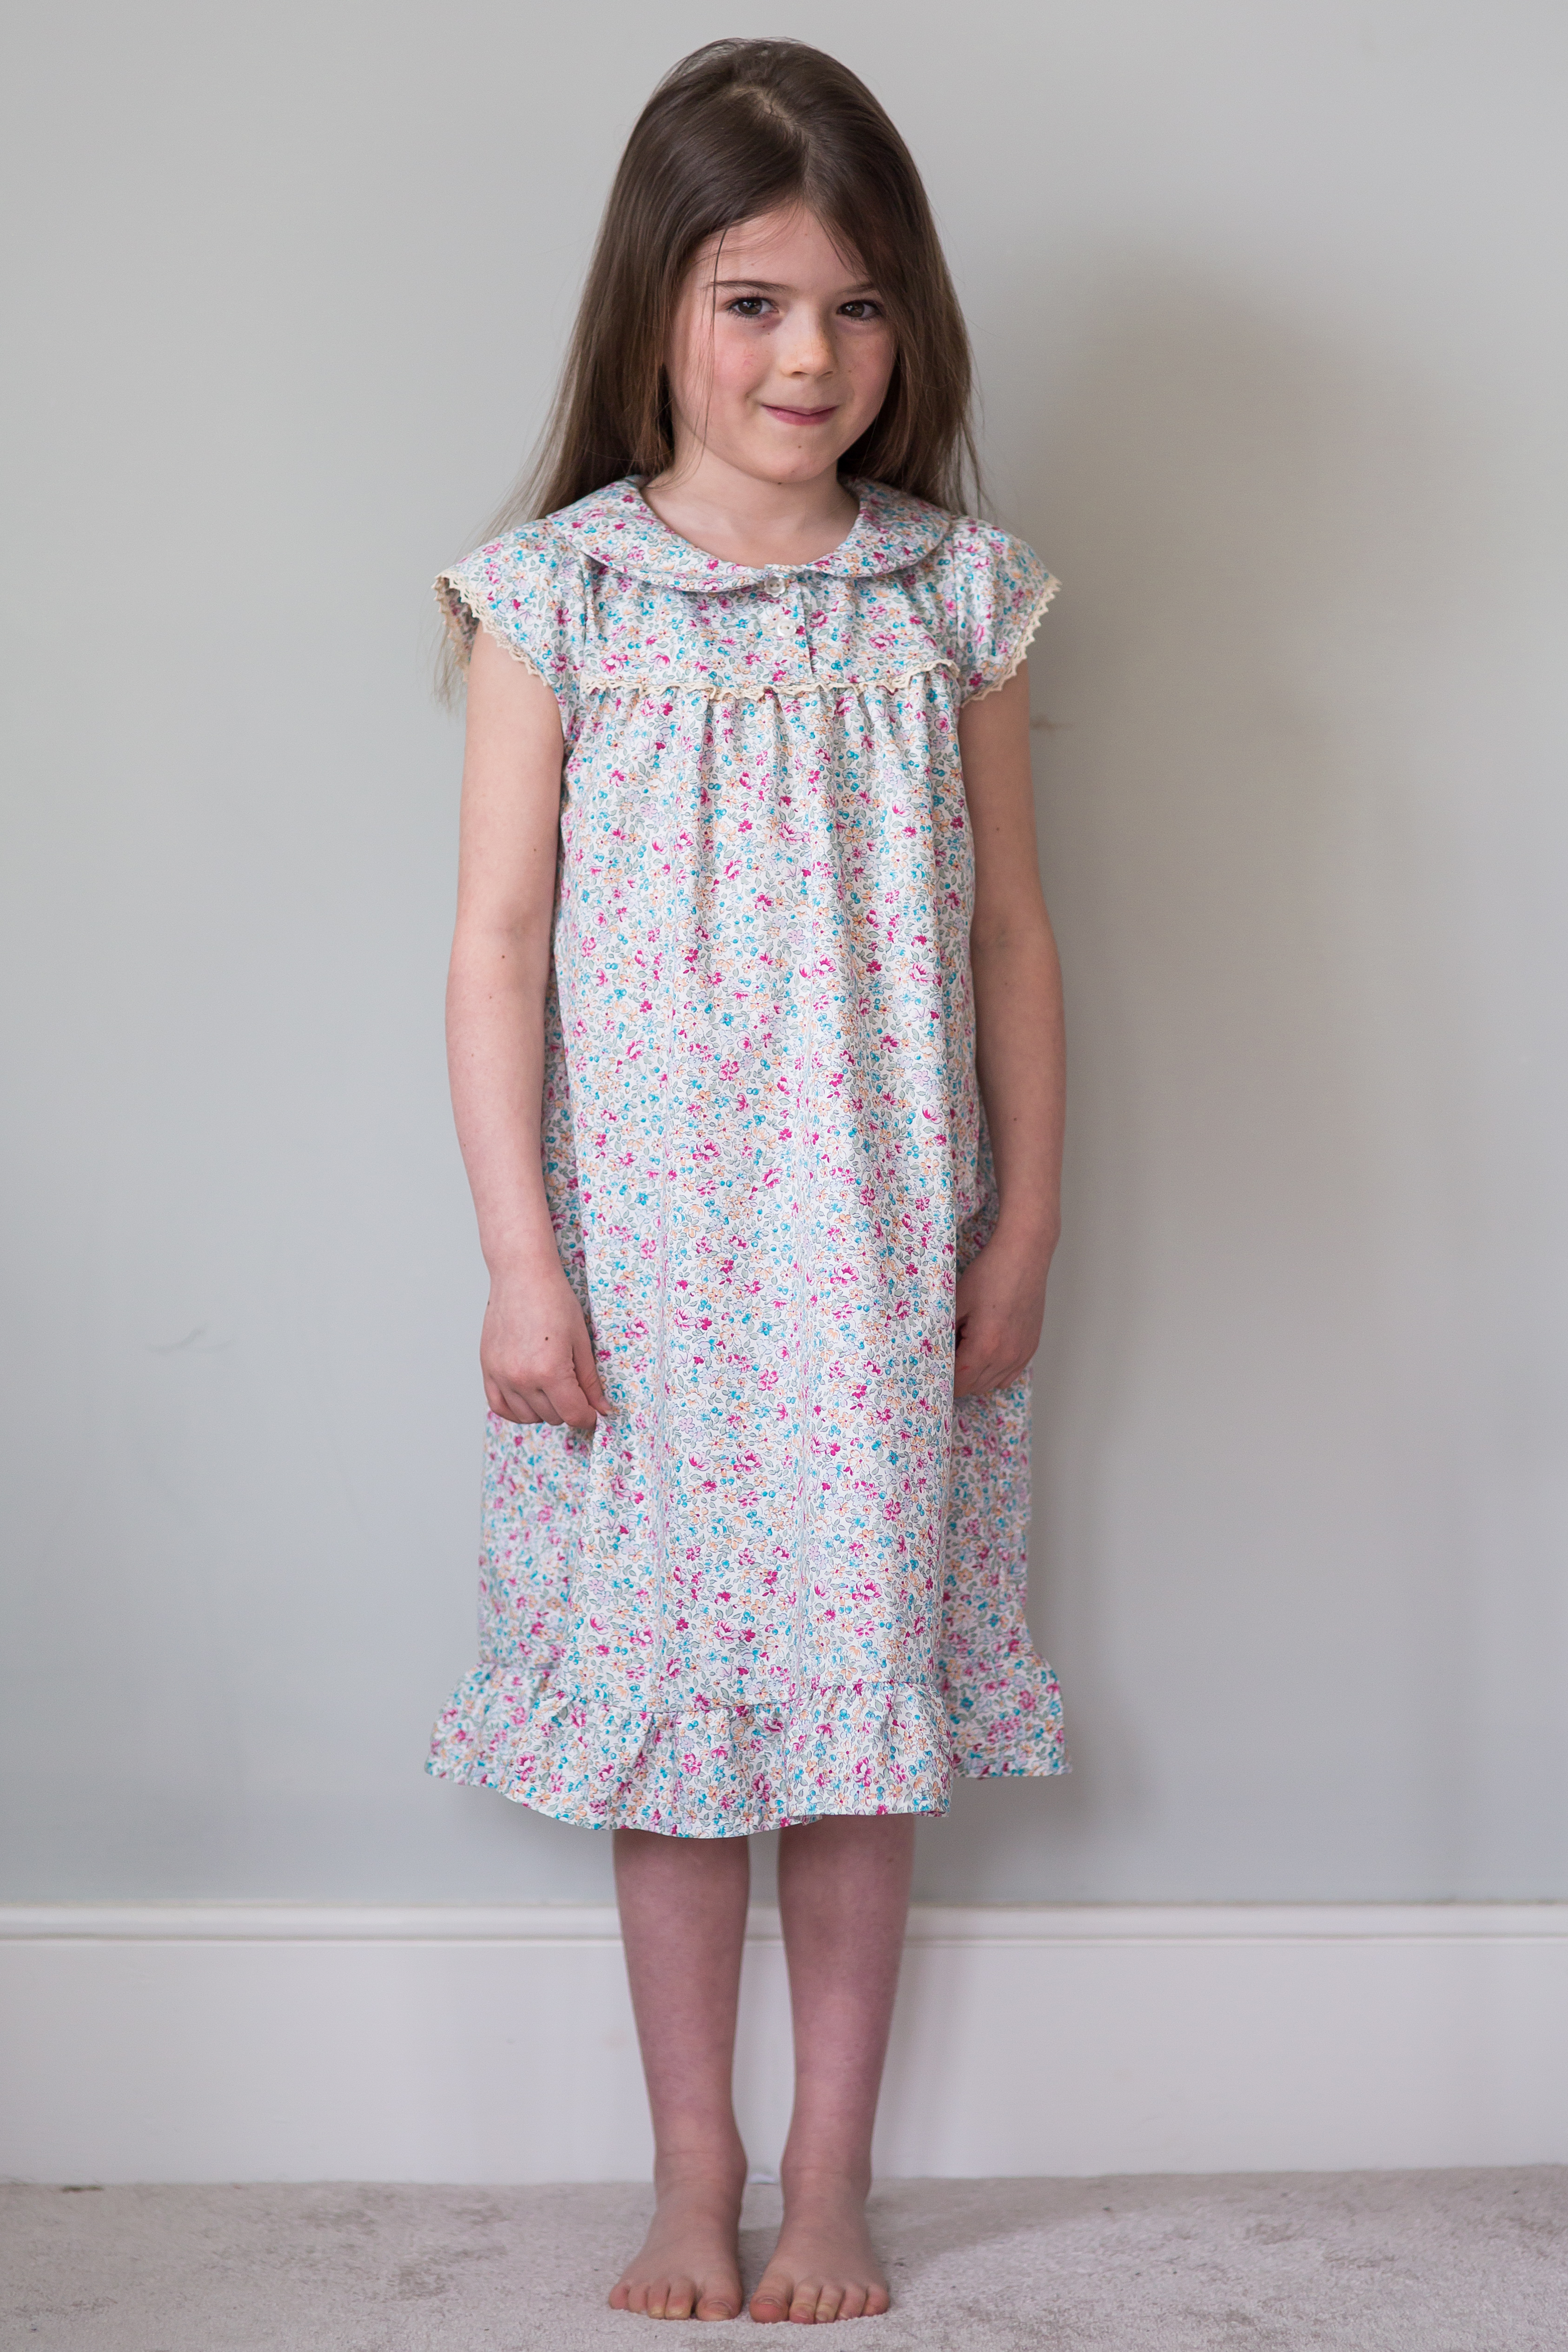 Ruffle nightie in ditzy floral